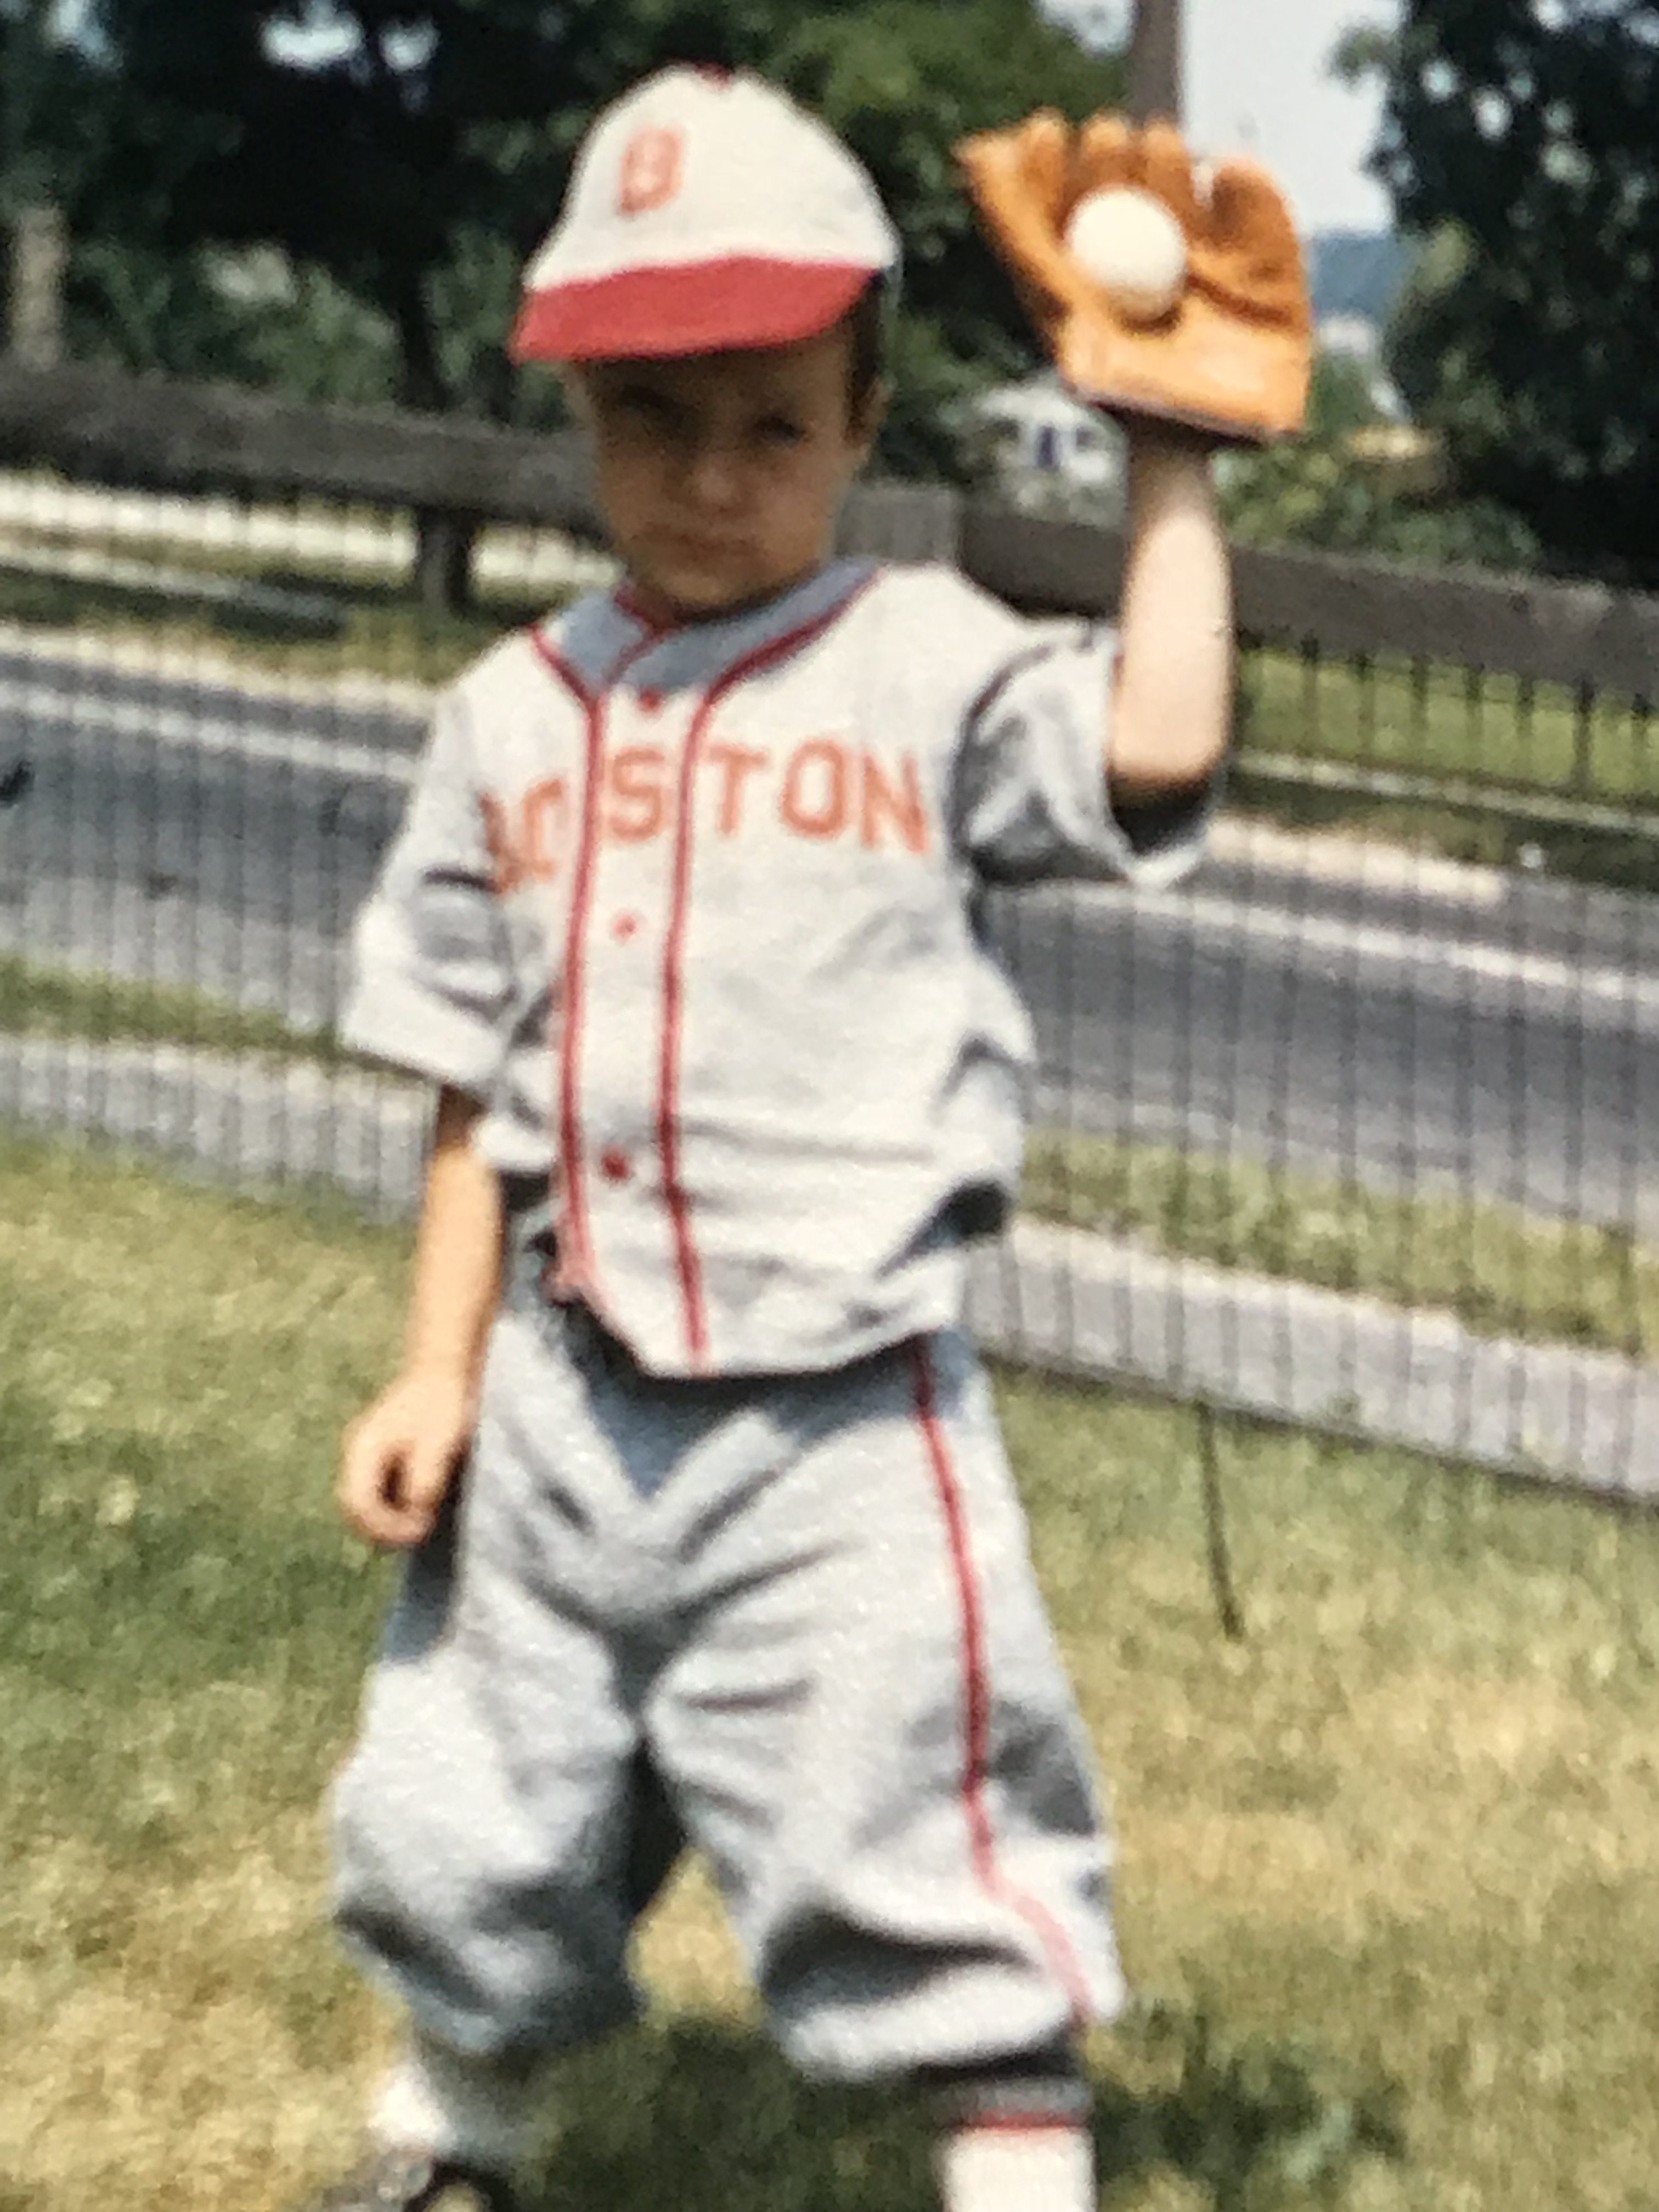 Dan playing baseball as a child